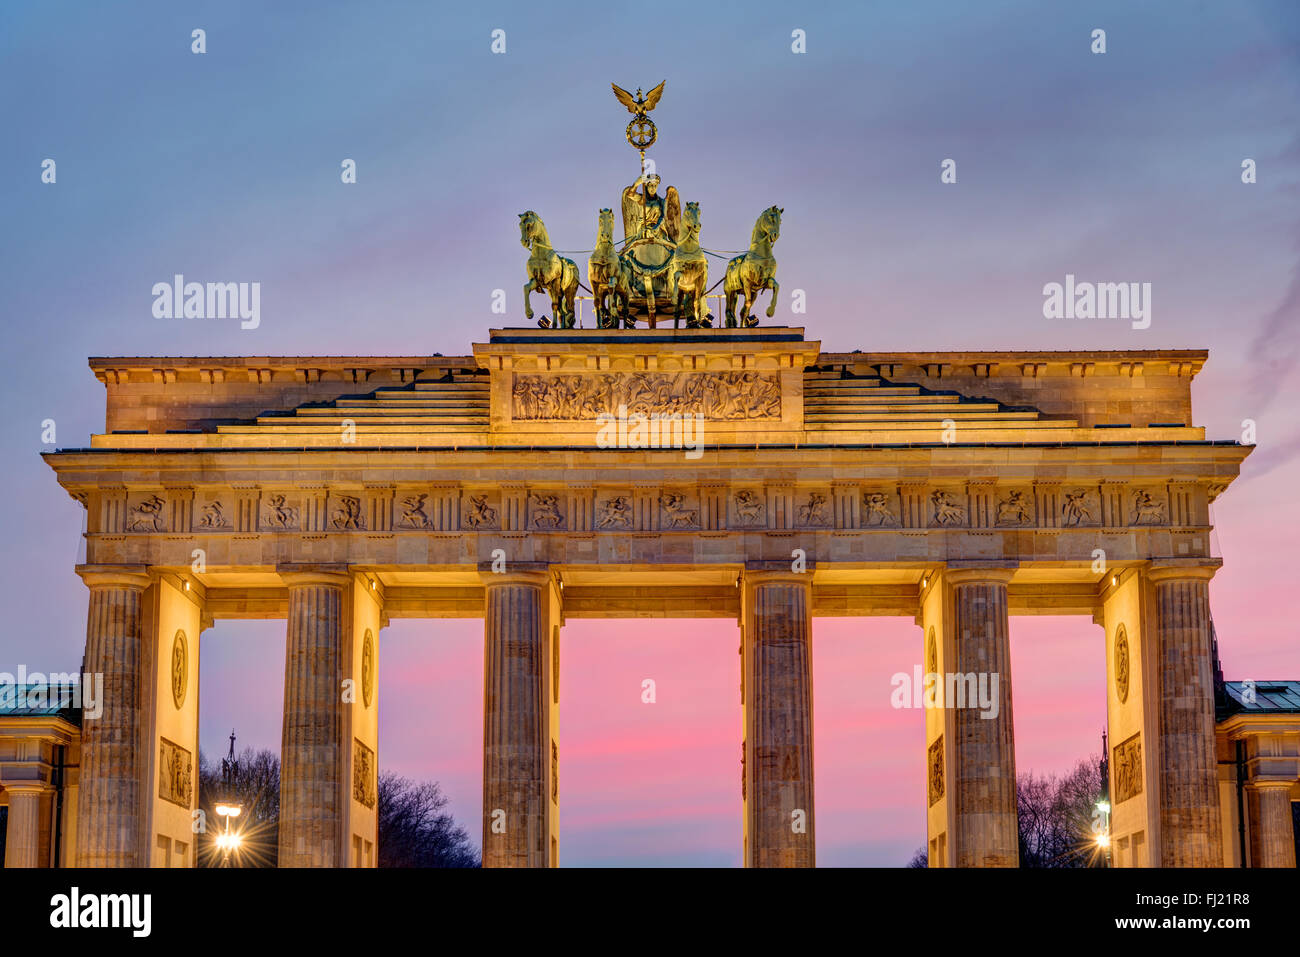 The famous Brandenburg Gate in Berlin after sunset - Stock Image